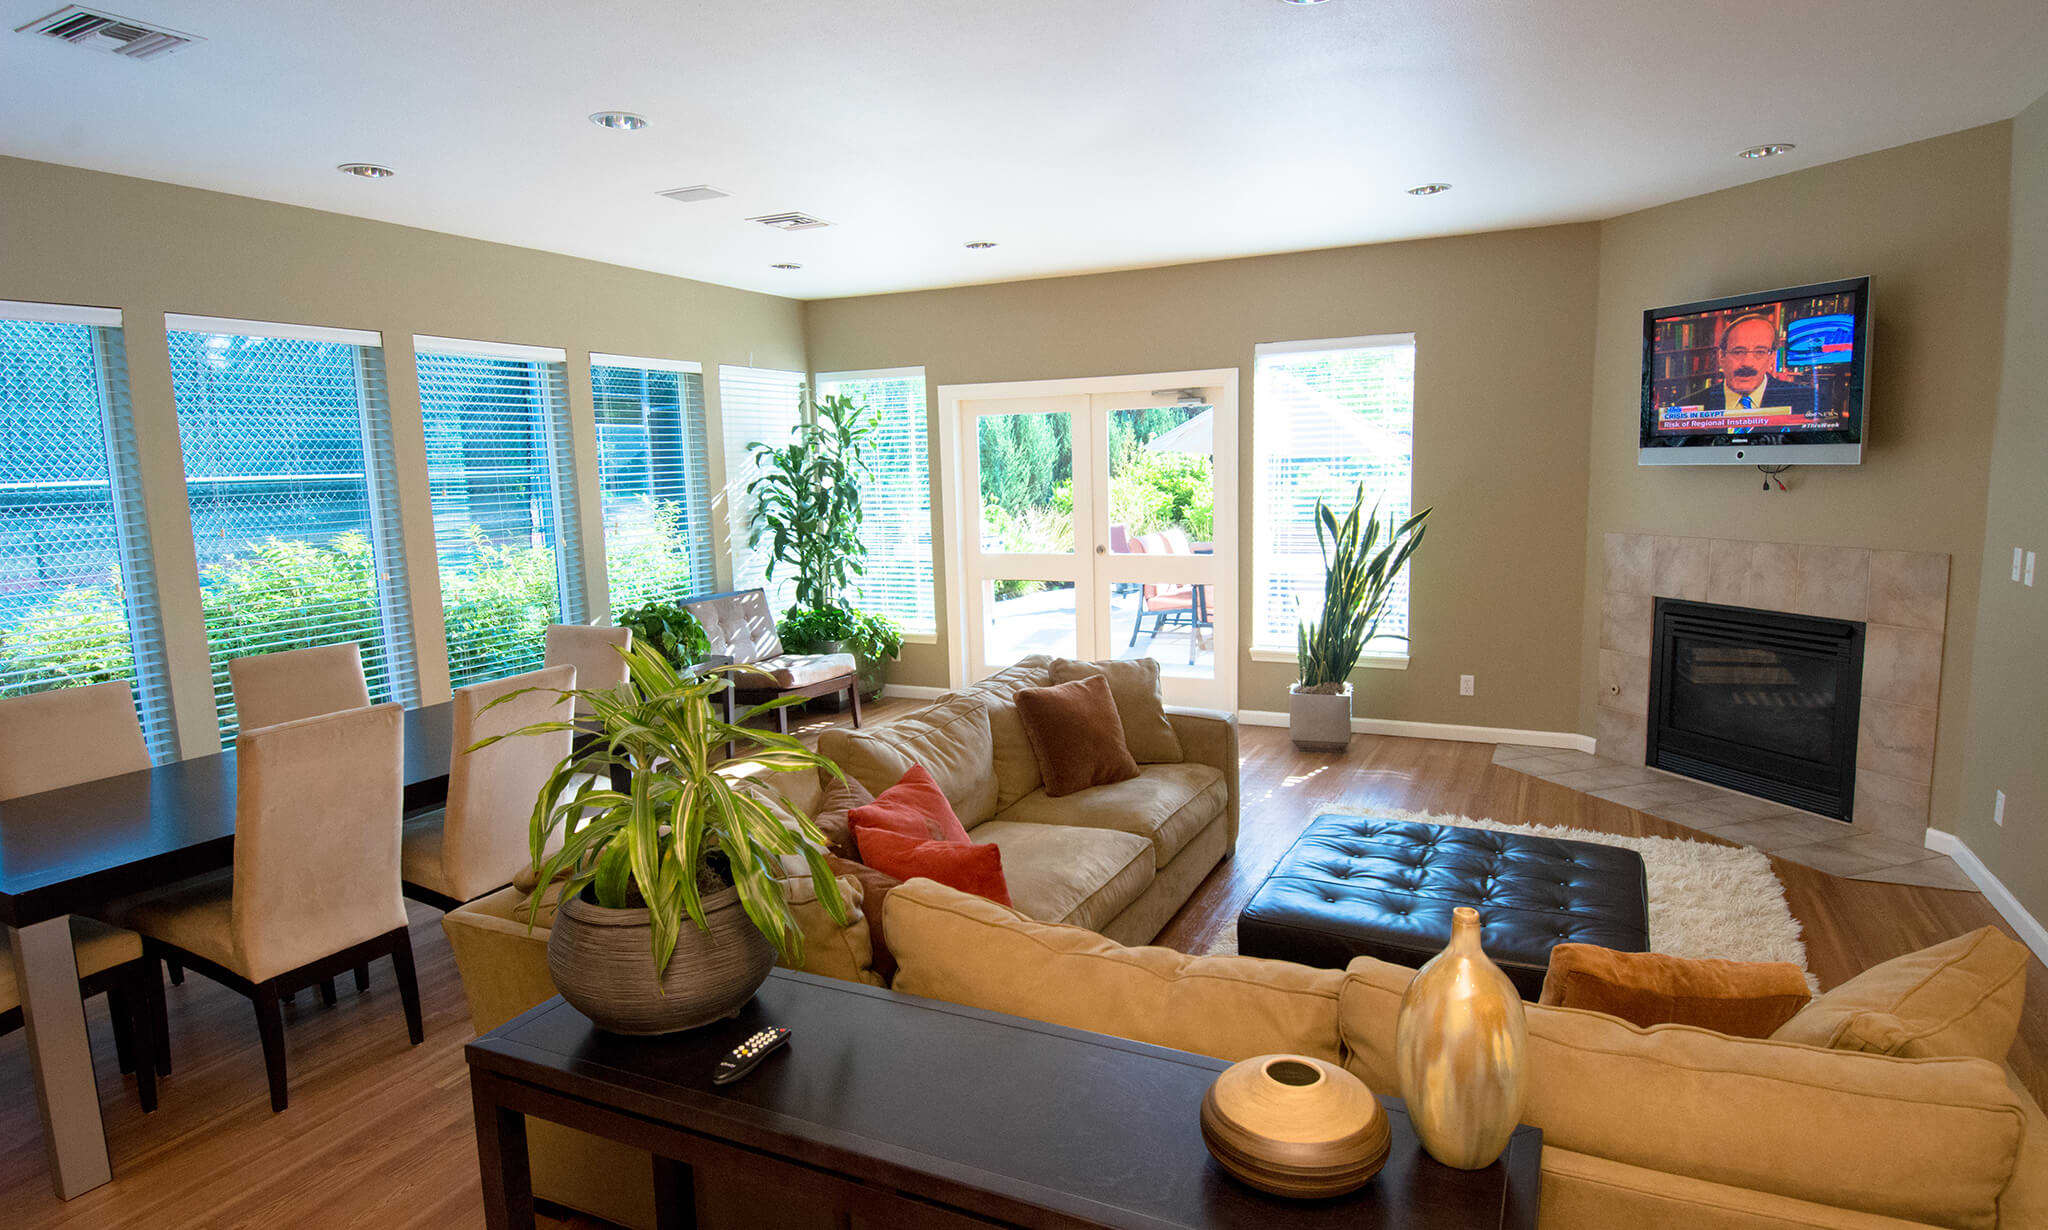 Cliffside Apartments apartments in Gig Harbor WA to rent photo 2